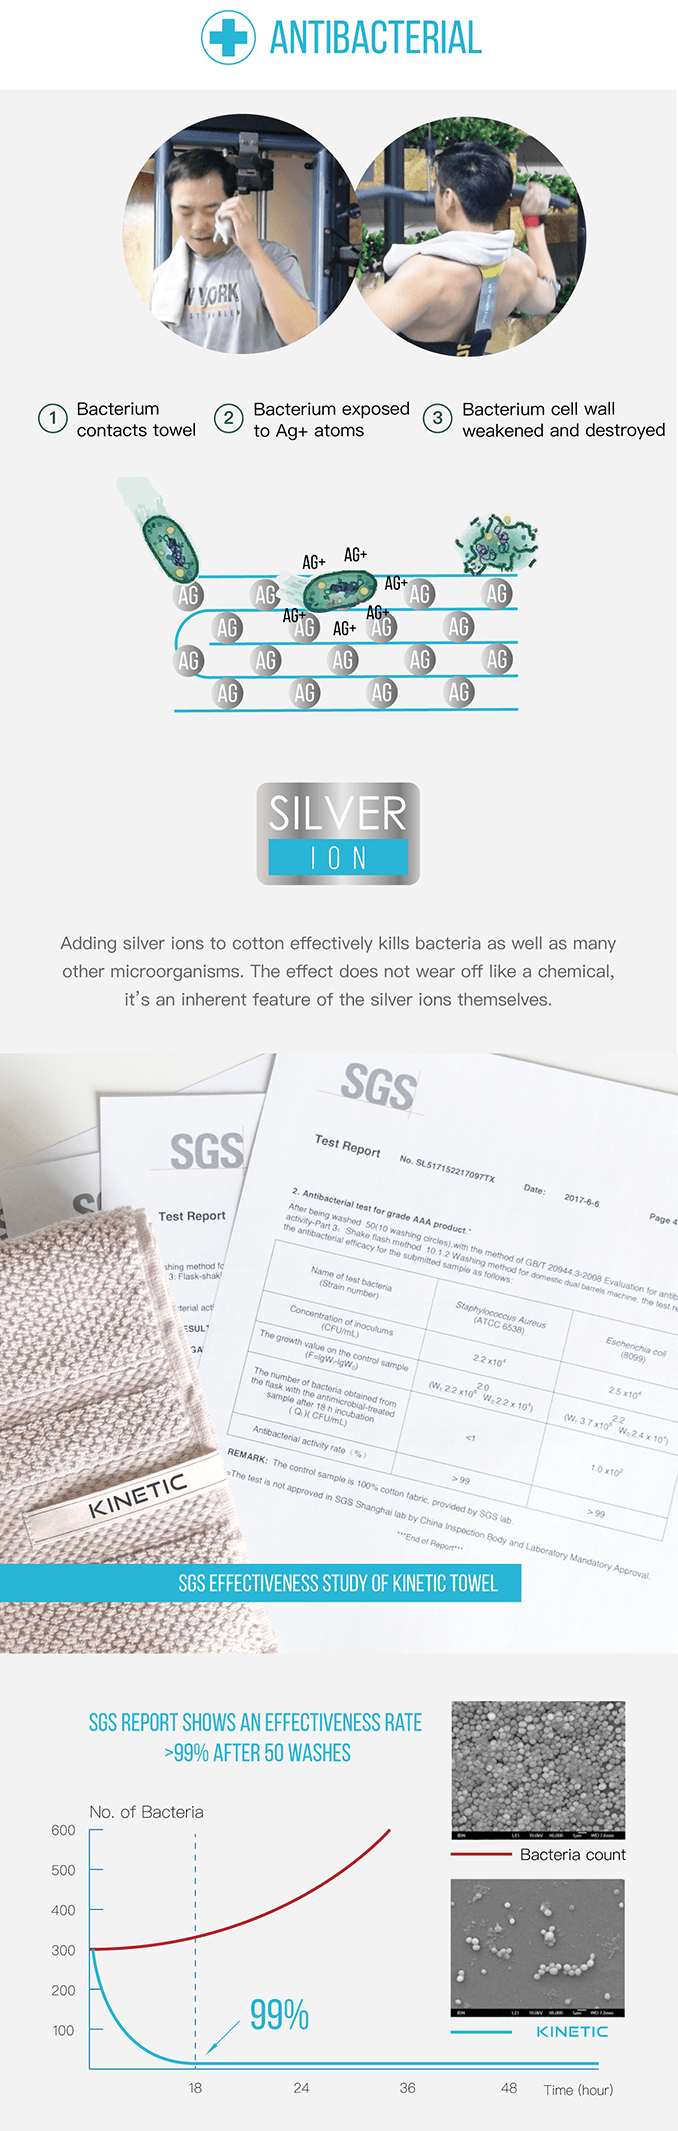 Since the Silver is bonded to the cotton at a molecular level, it doesn't wear off. Even after 50 washes, the SGS testing agency found the towel was still greater than 99% effective!